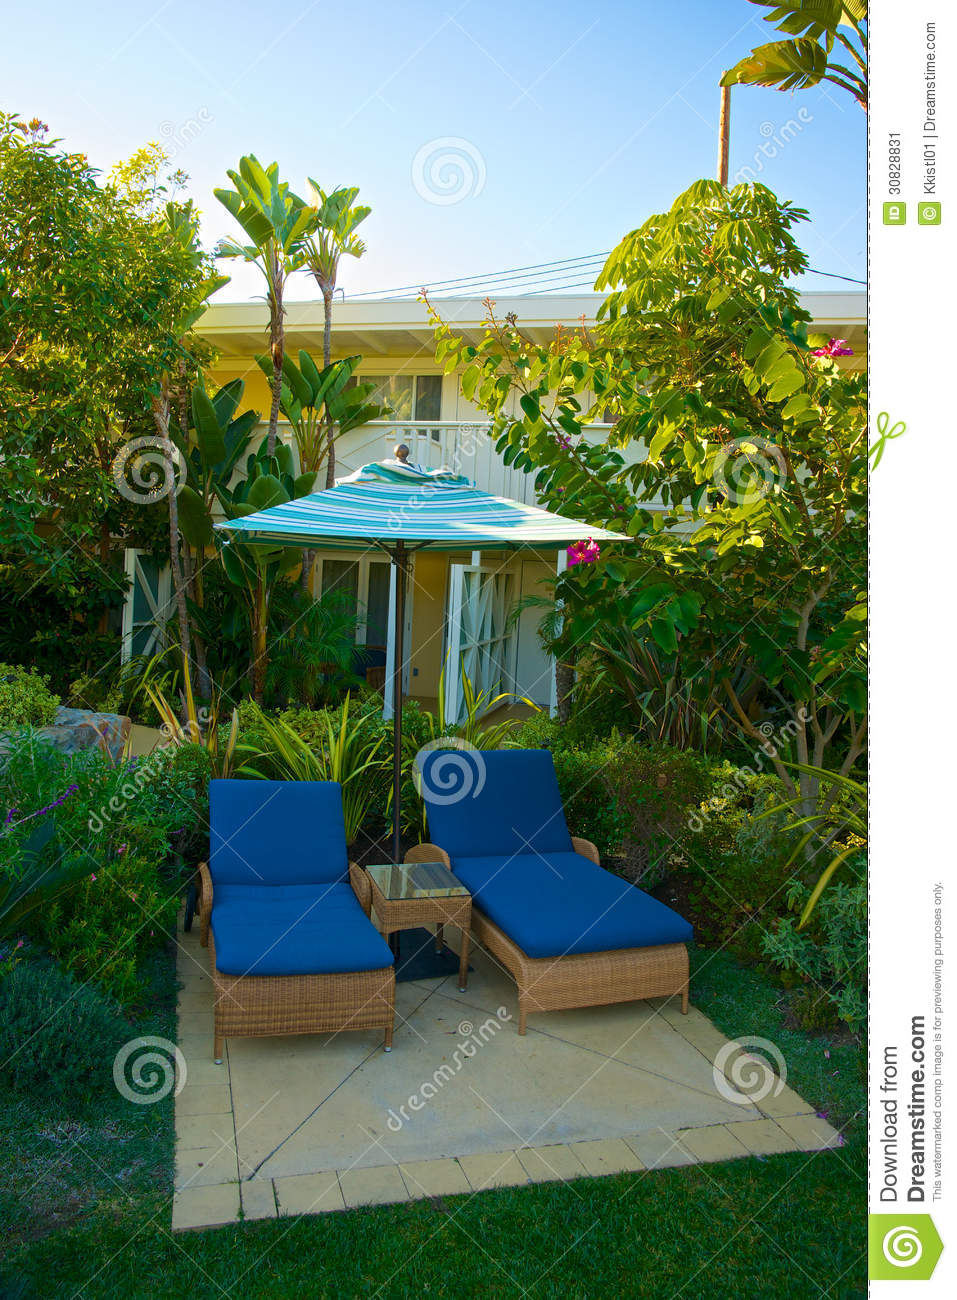 Chaise Lounge Setting tropicale